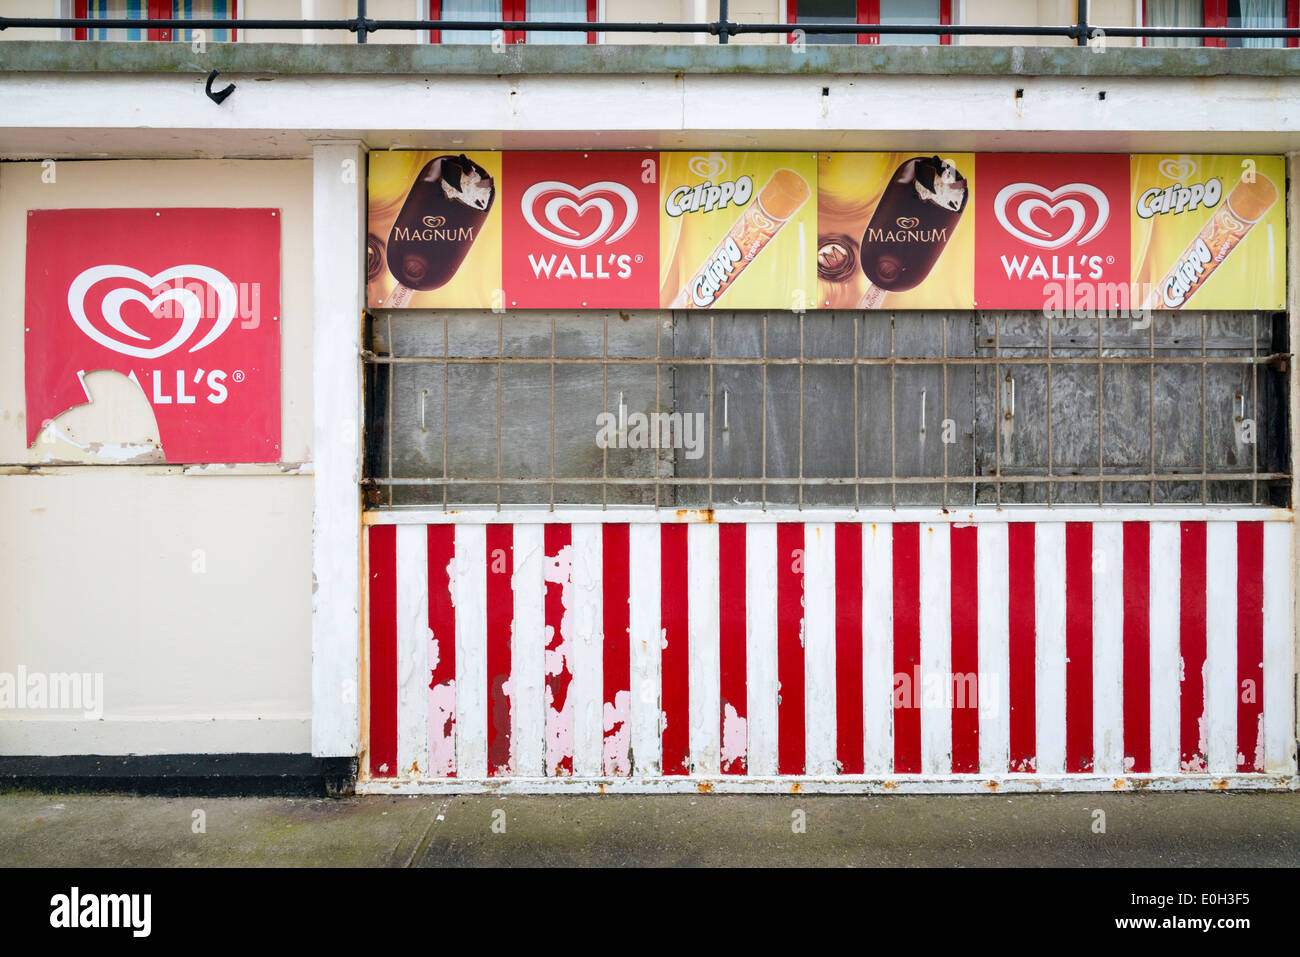 A closed and run down Wall's Ice cream parlour or kiosk on the promenade of the seaside town of Sheringham Norfolk Stock Photo